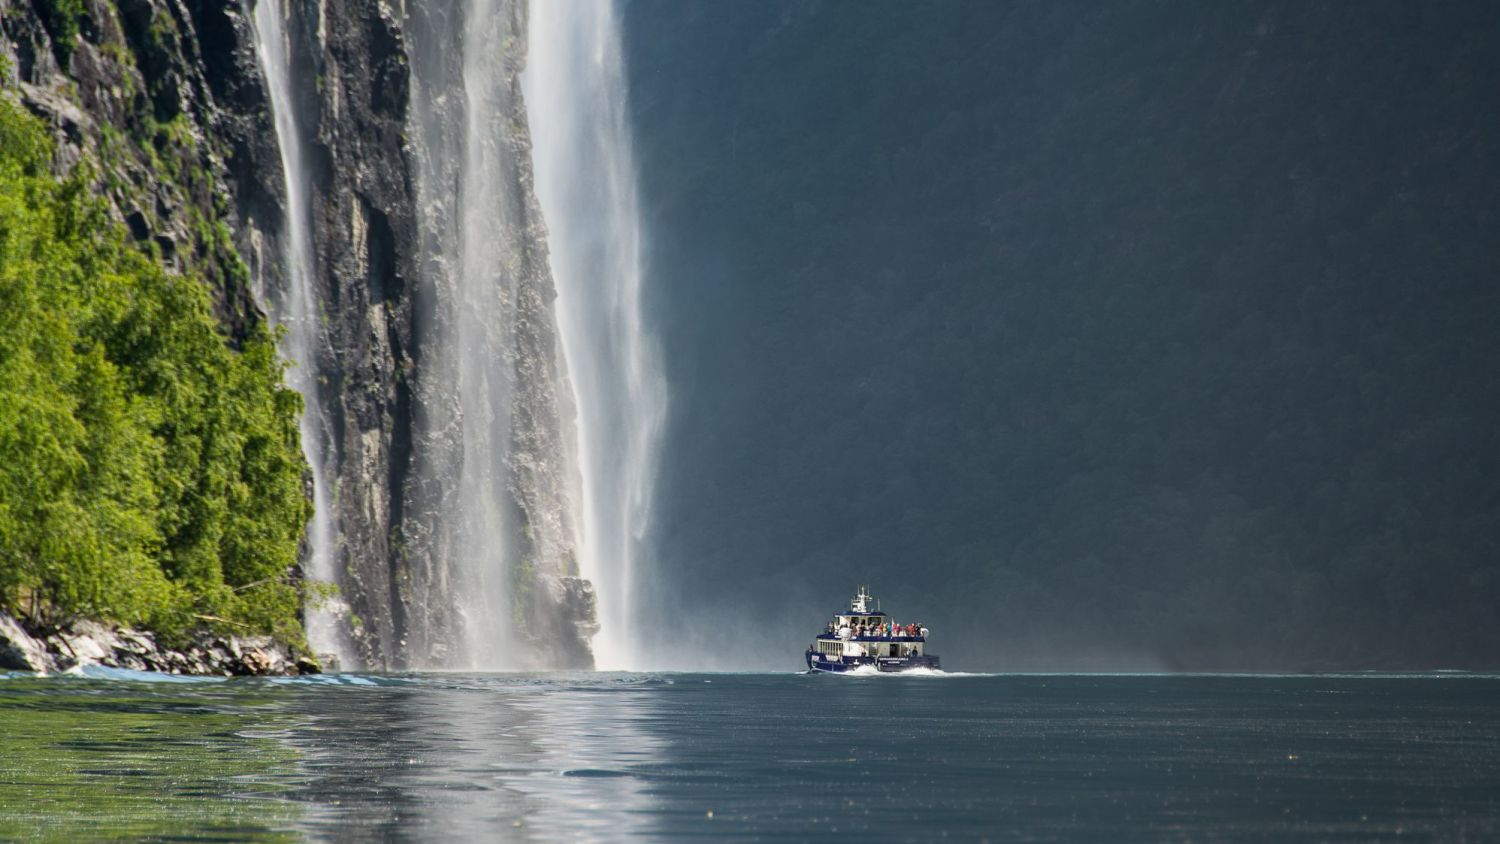 Fjordcruise close to whirling waterfalls in Geiranger. Photo Iberis Tacer/Geiranger Fjordservice